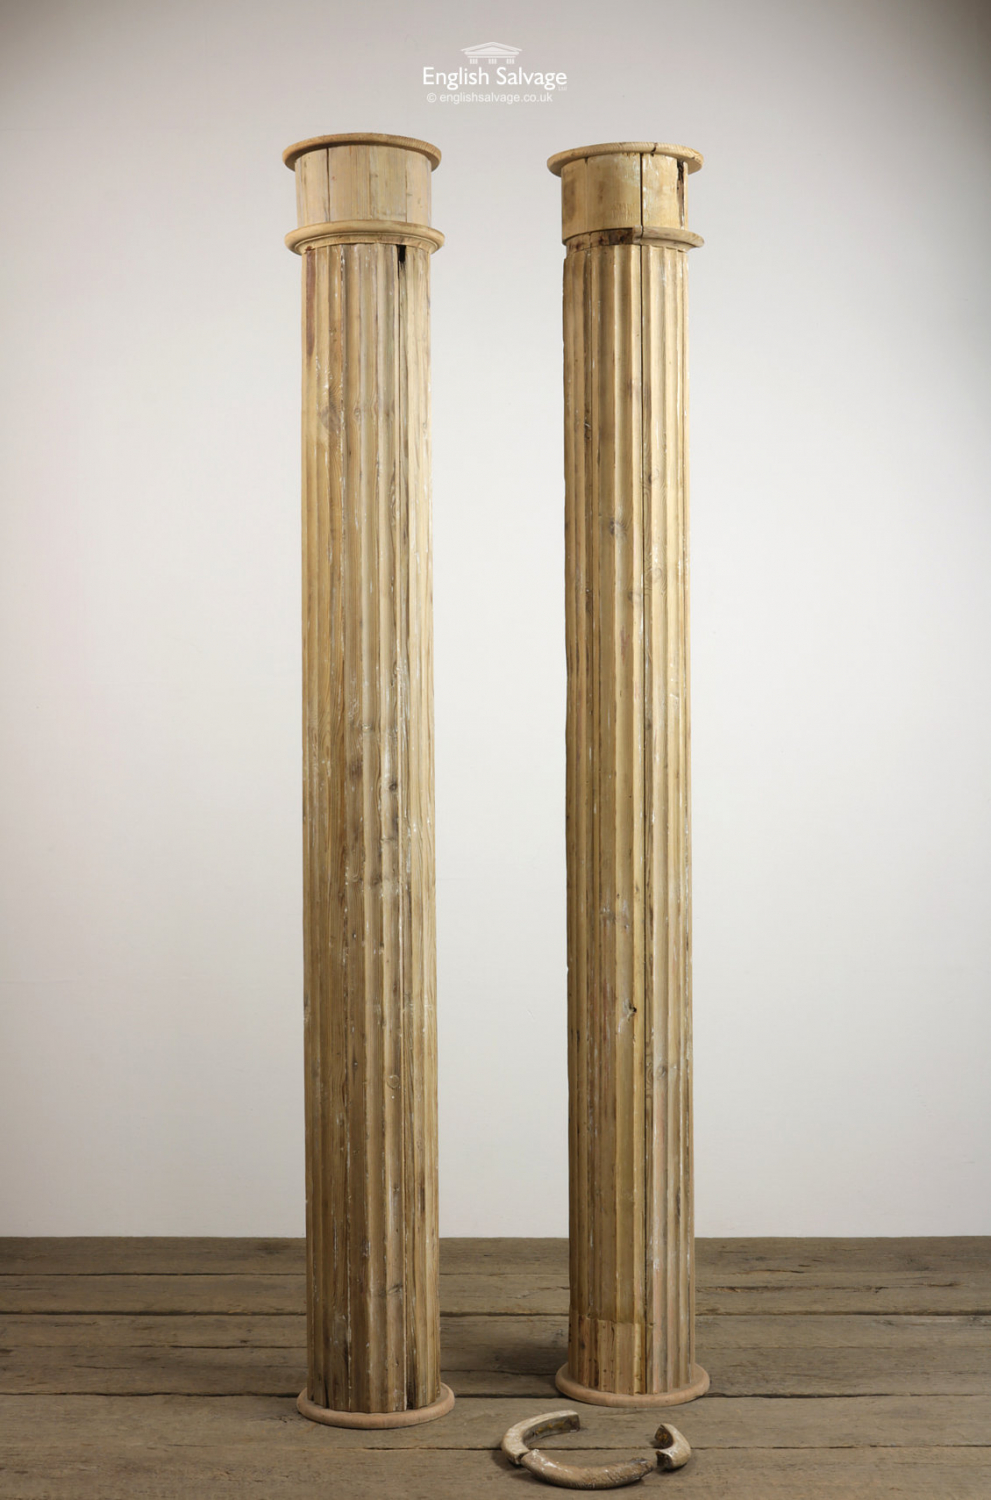 Reclaimed Fluted Pine Pillars Columns